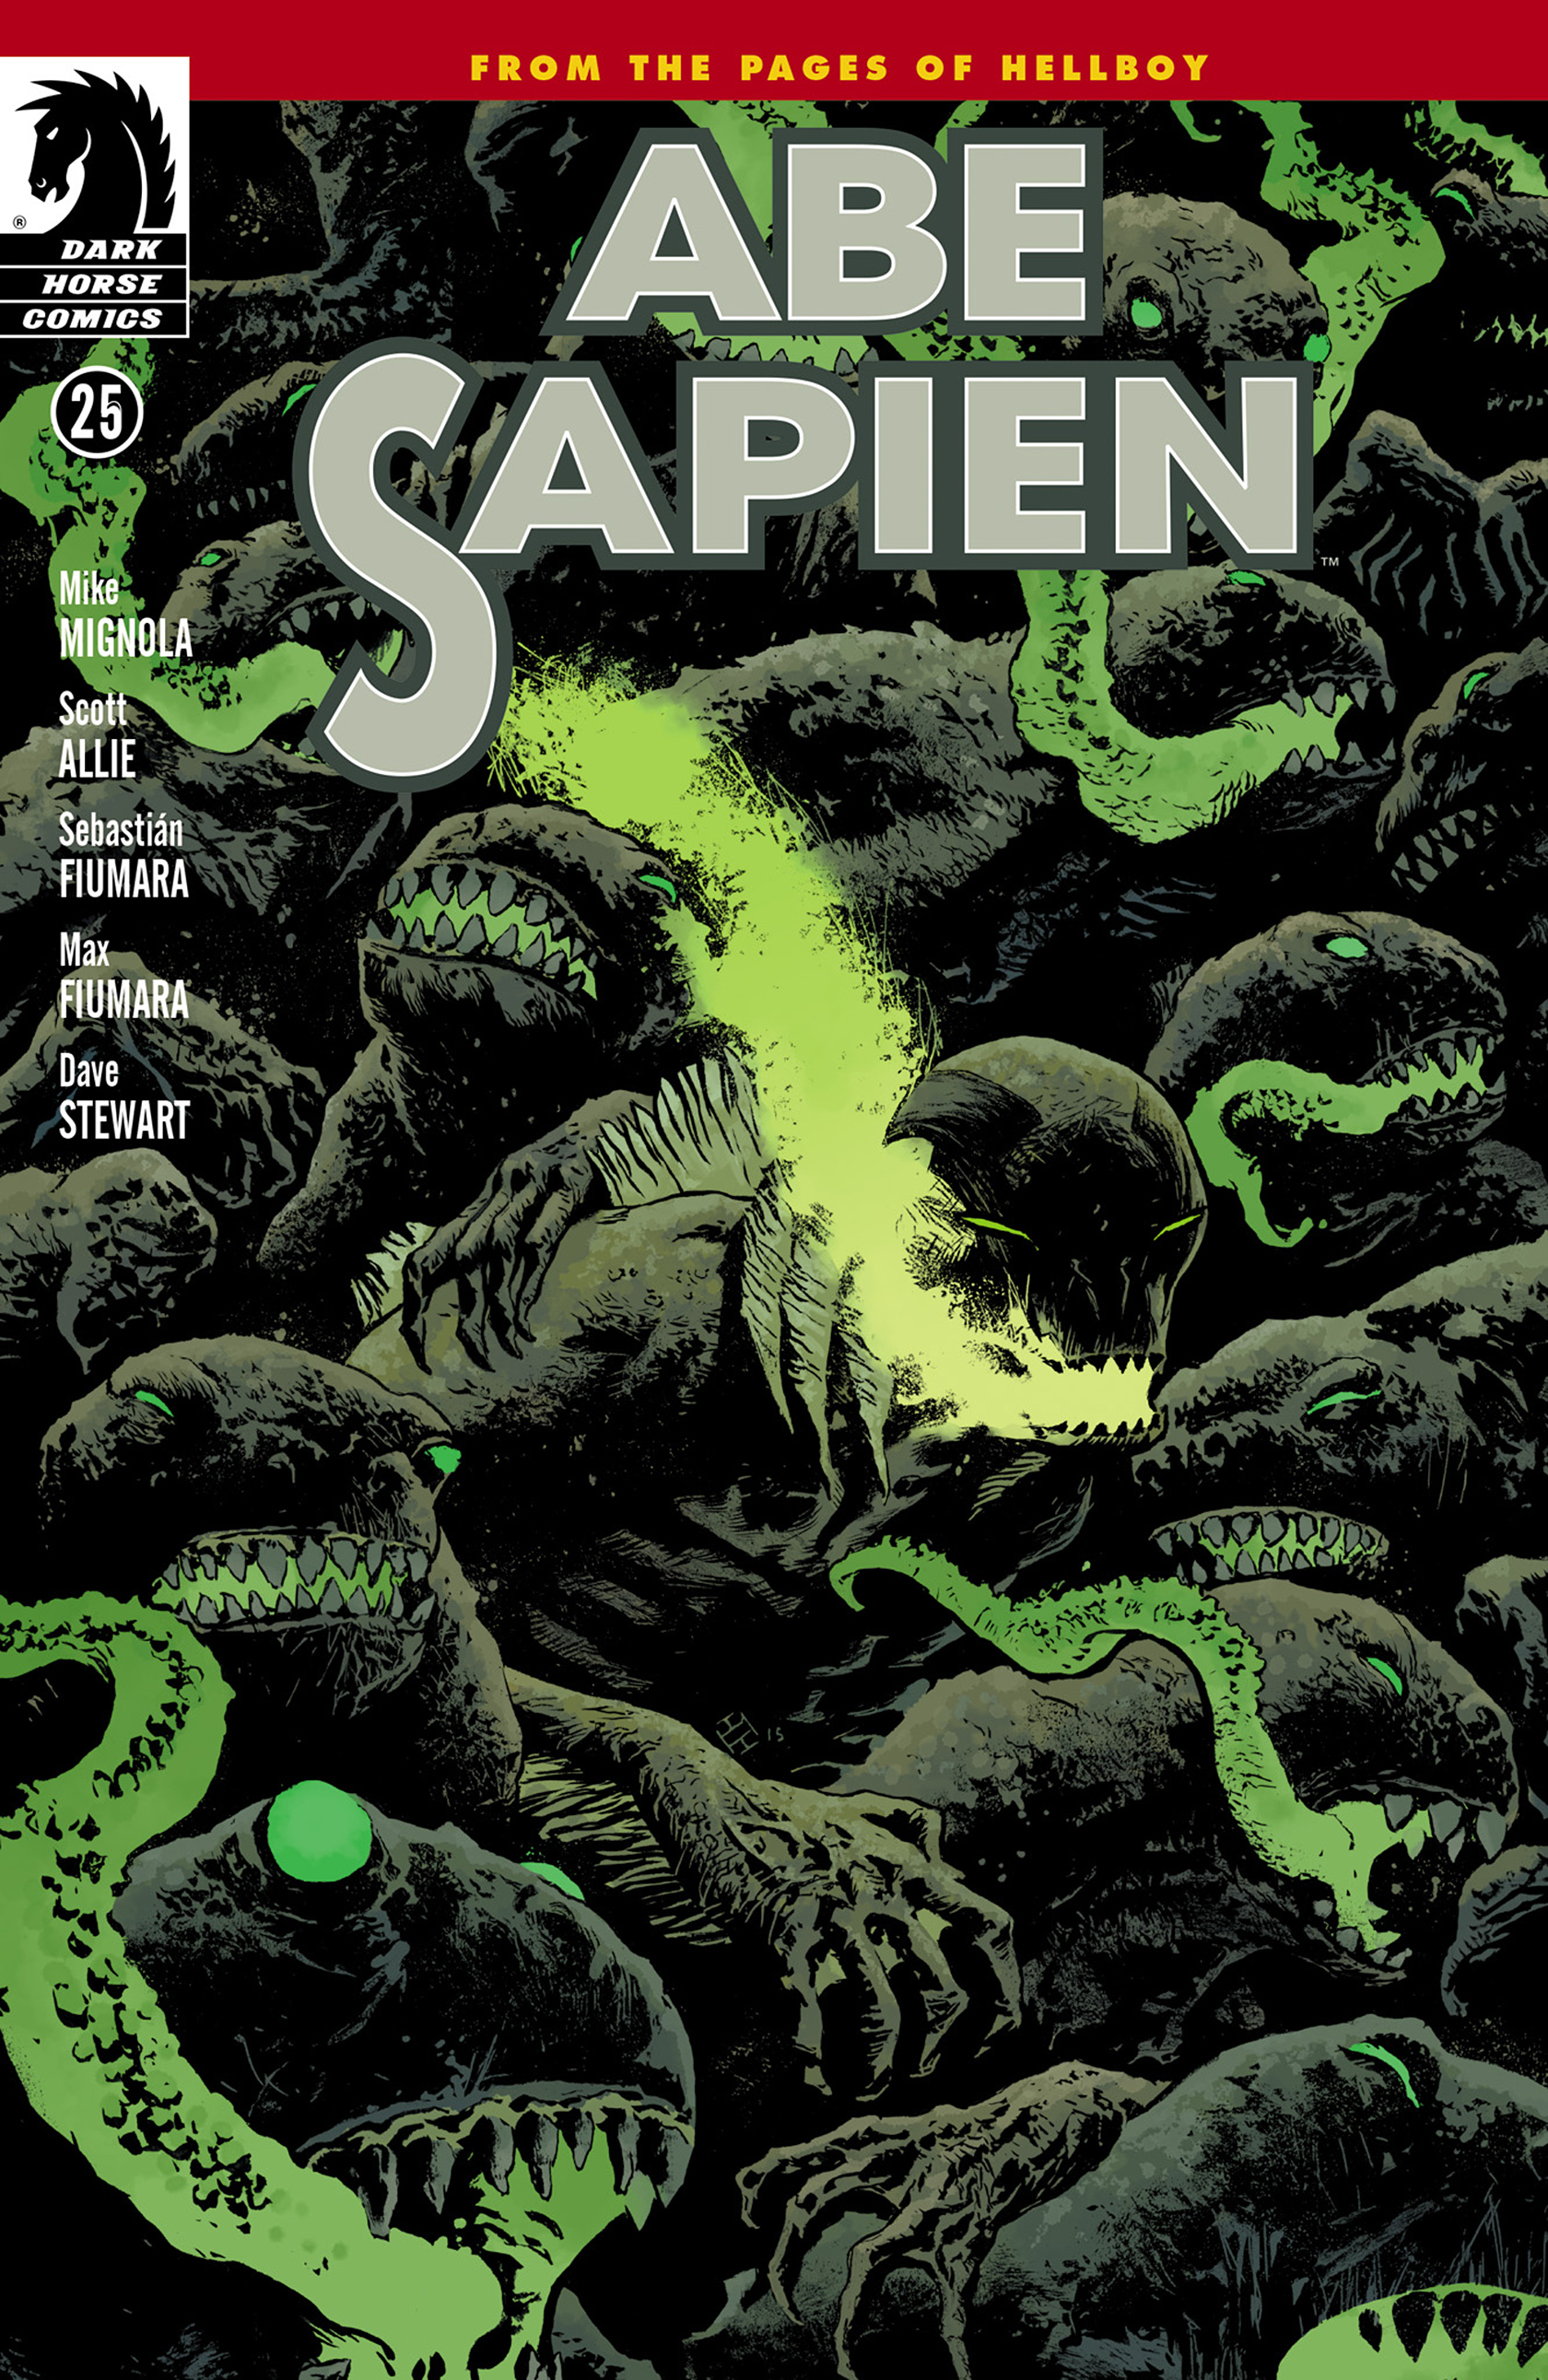 Read online Abe Sapien comic -  Issue #25 - 1